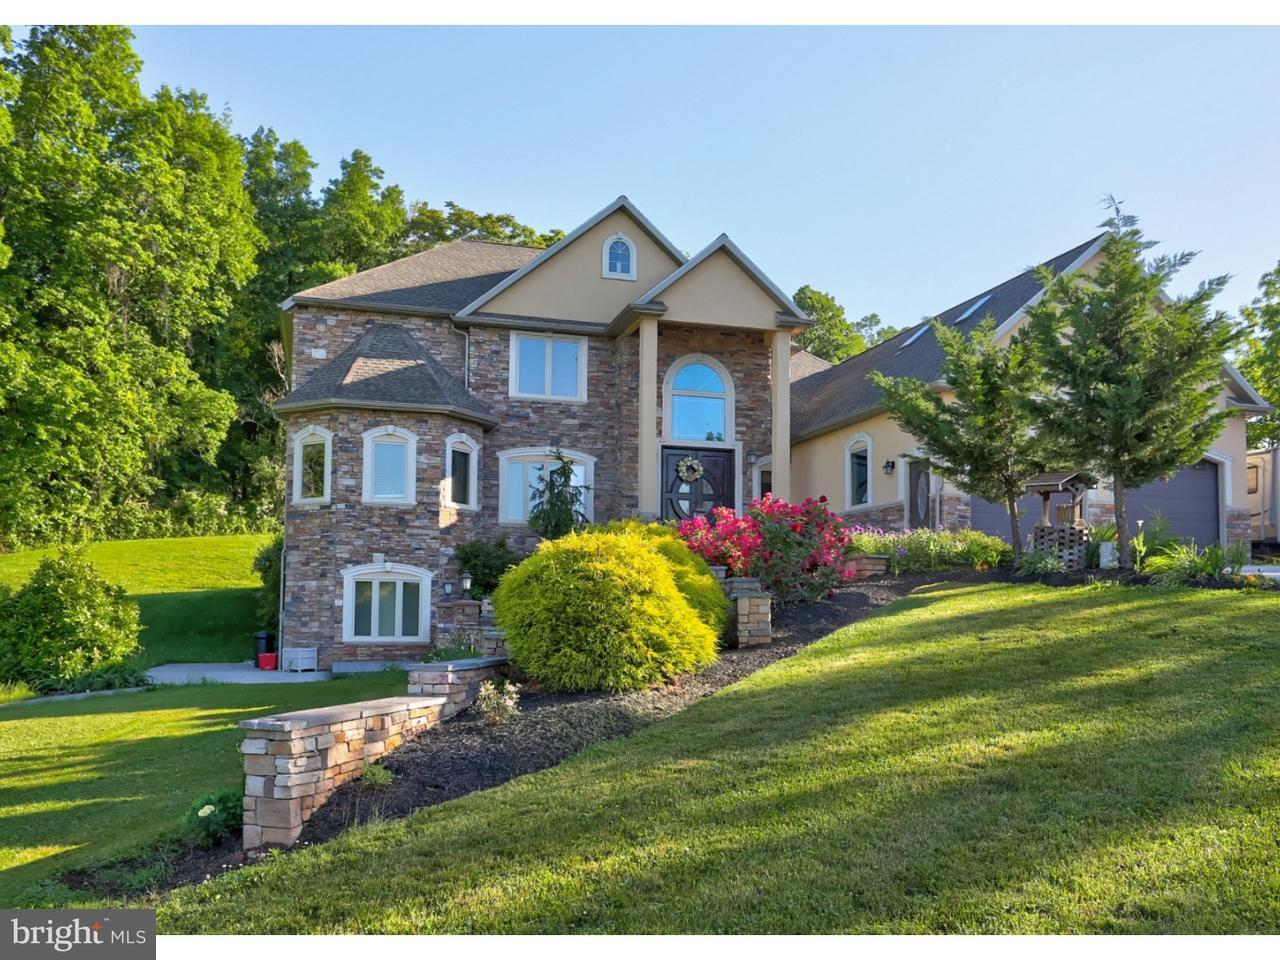 Single Family Home for Sale at 70 HORSESHOE TRAIL Road Denver, Pennsylvania 17517 United States